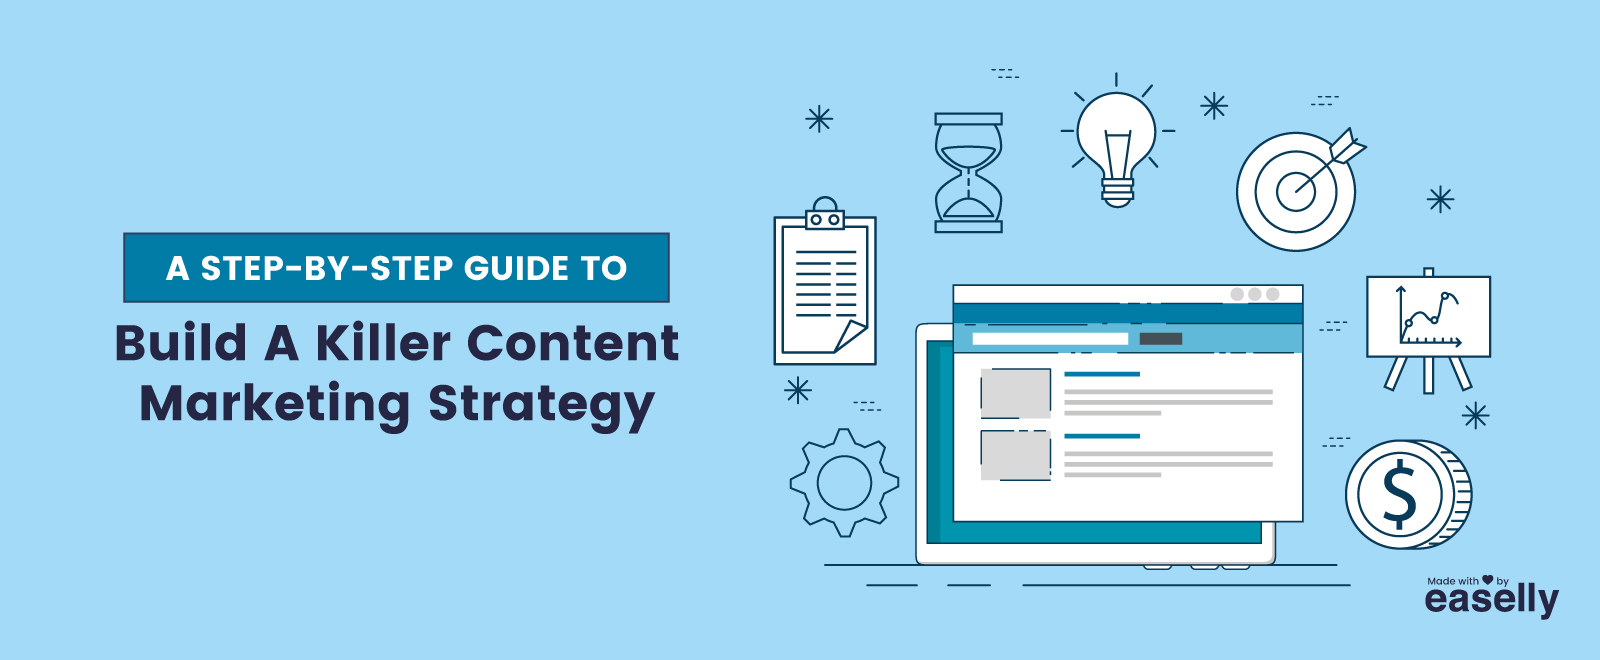 Step-By-Step Guide to a killer marketing strategy